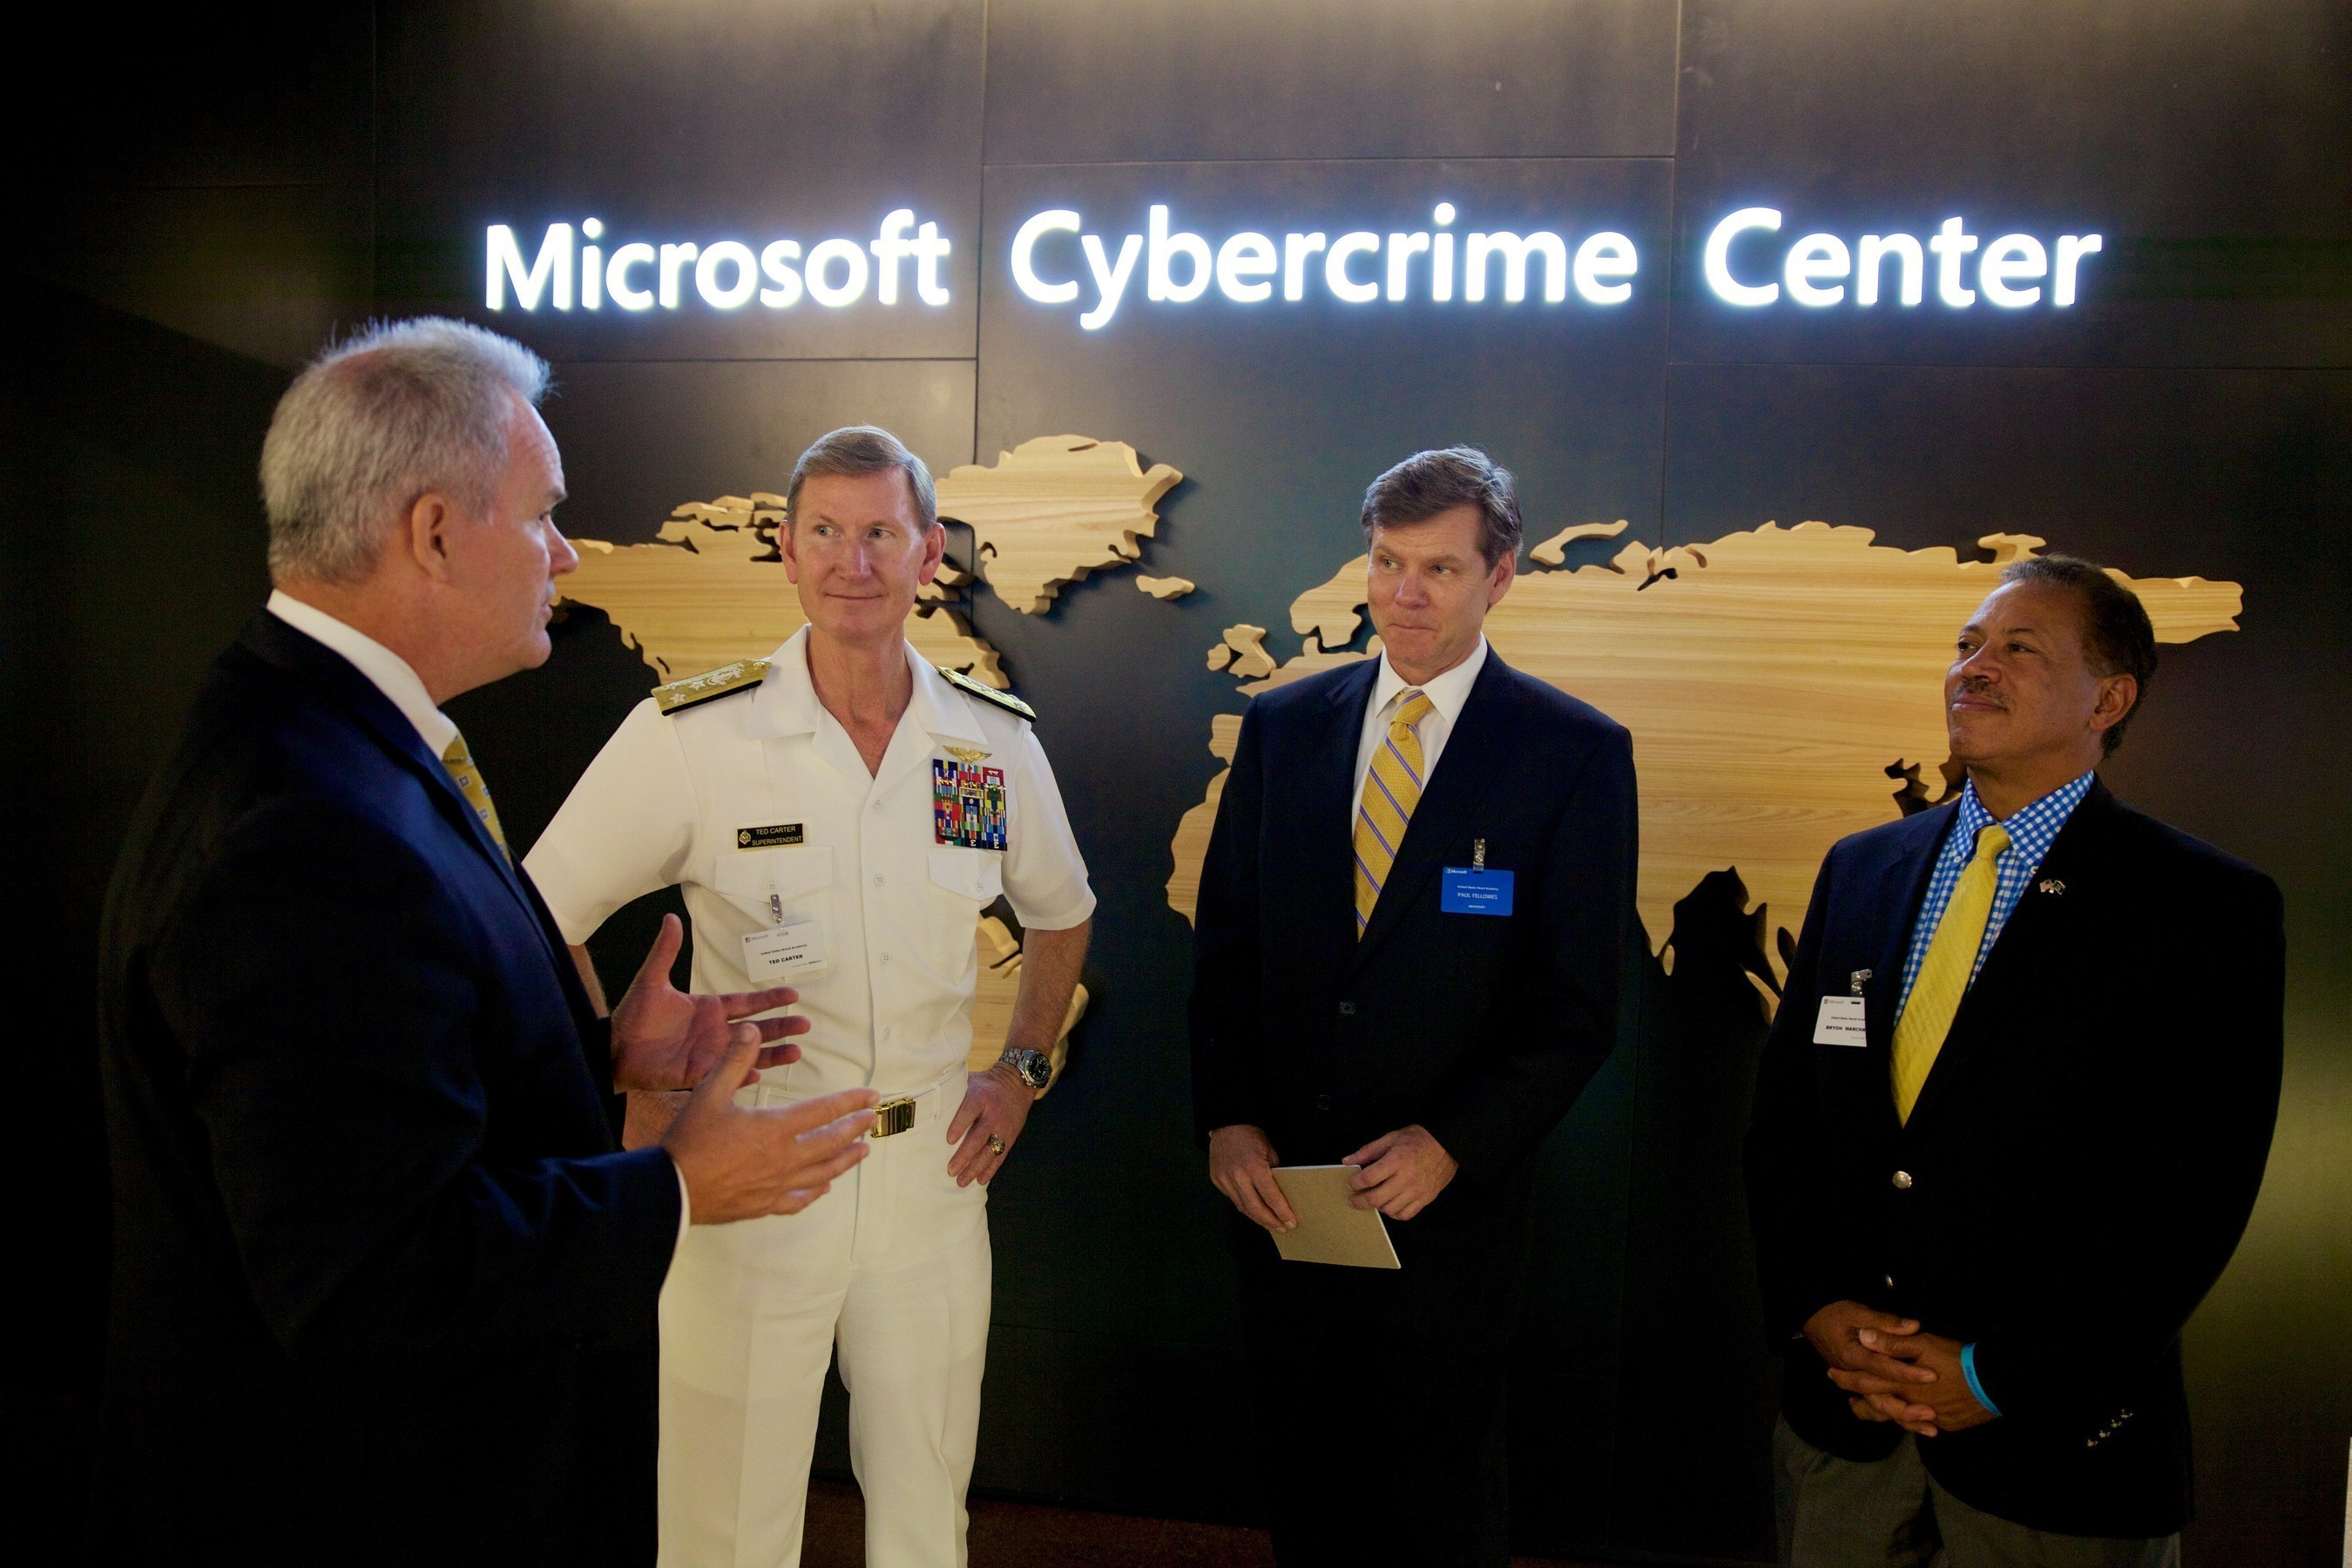 Naval Academy Superintendent VADM Ted Carter of the Naval Academy Class of 1981 had an opportunity to explore Microsoft's cyber defense initiatives during a July visit to the company's Redmond, WA headquarters.